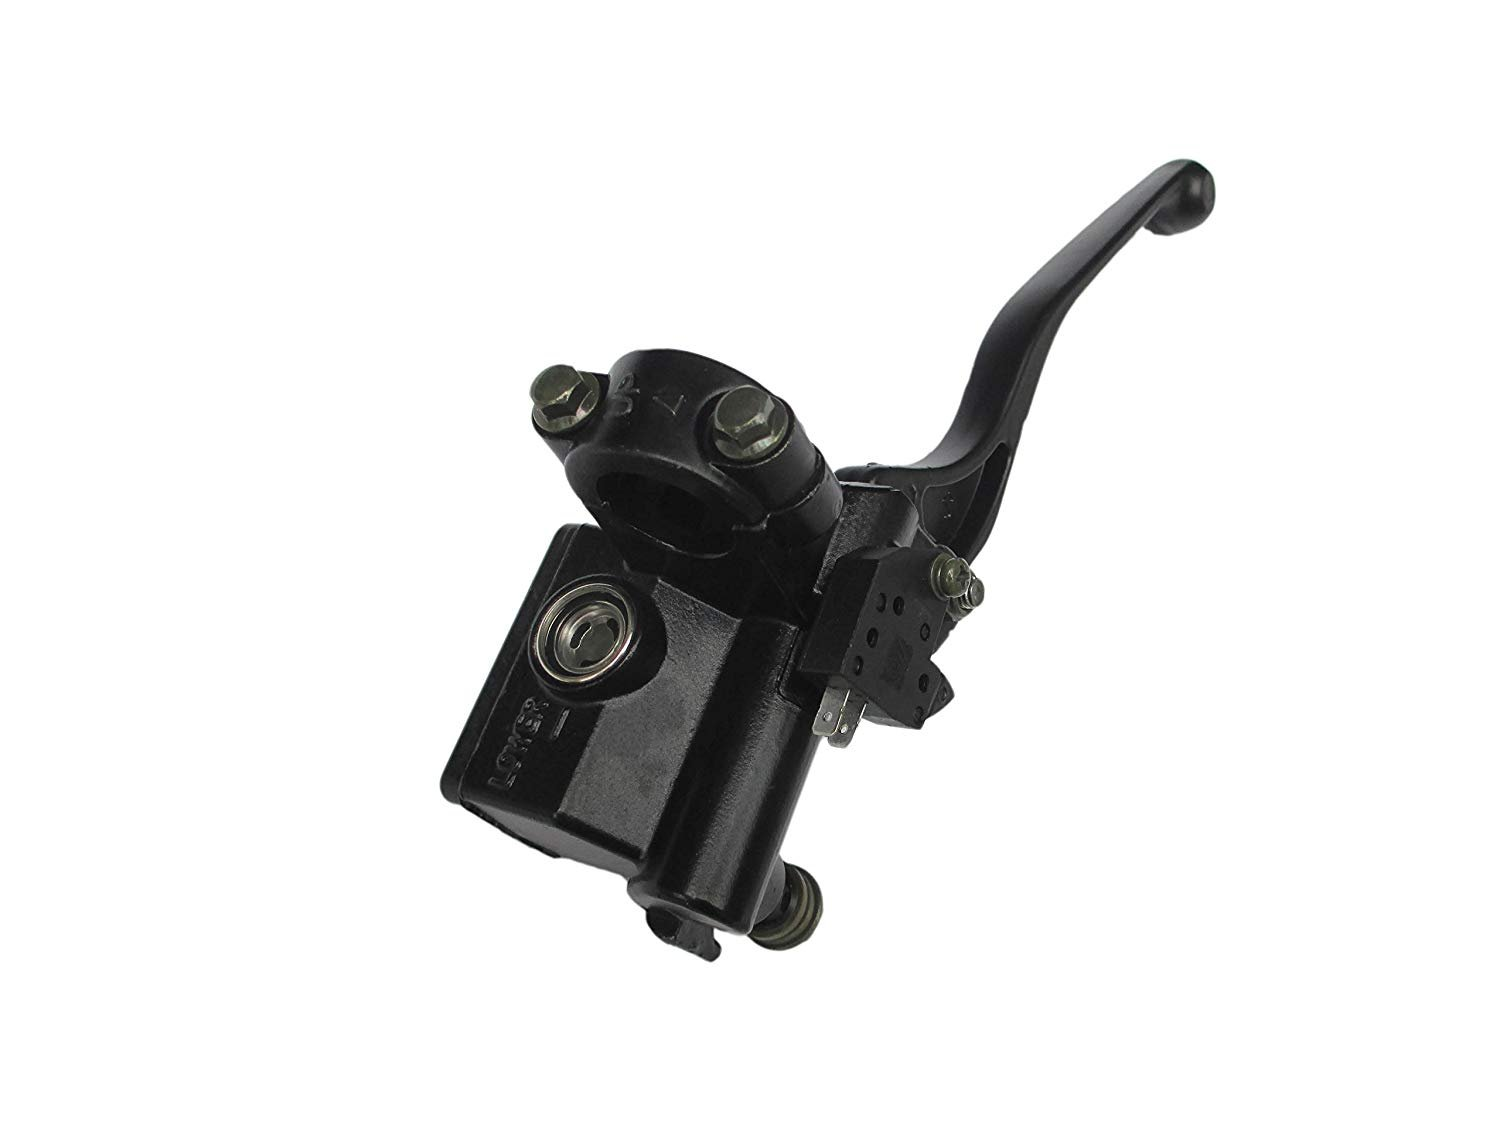 New Brake Master Cylinder Fits Honda CB125-175 Nighthawk 250-750 Rebel 250 450